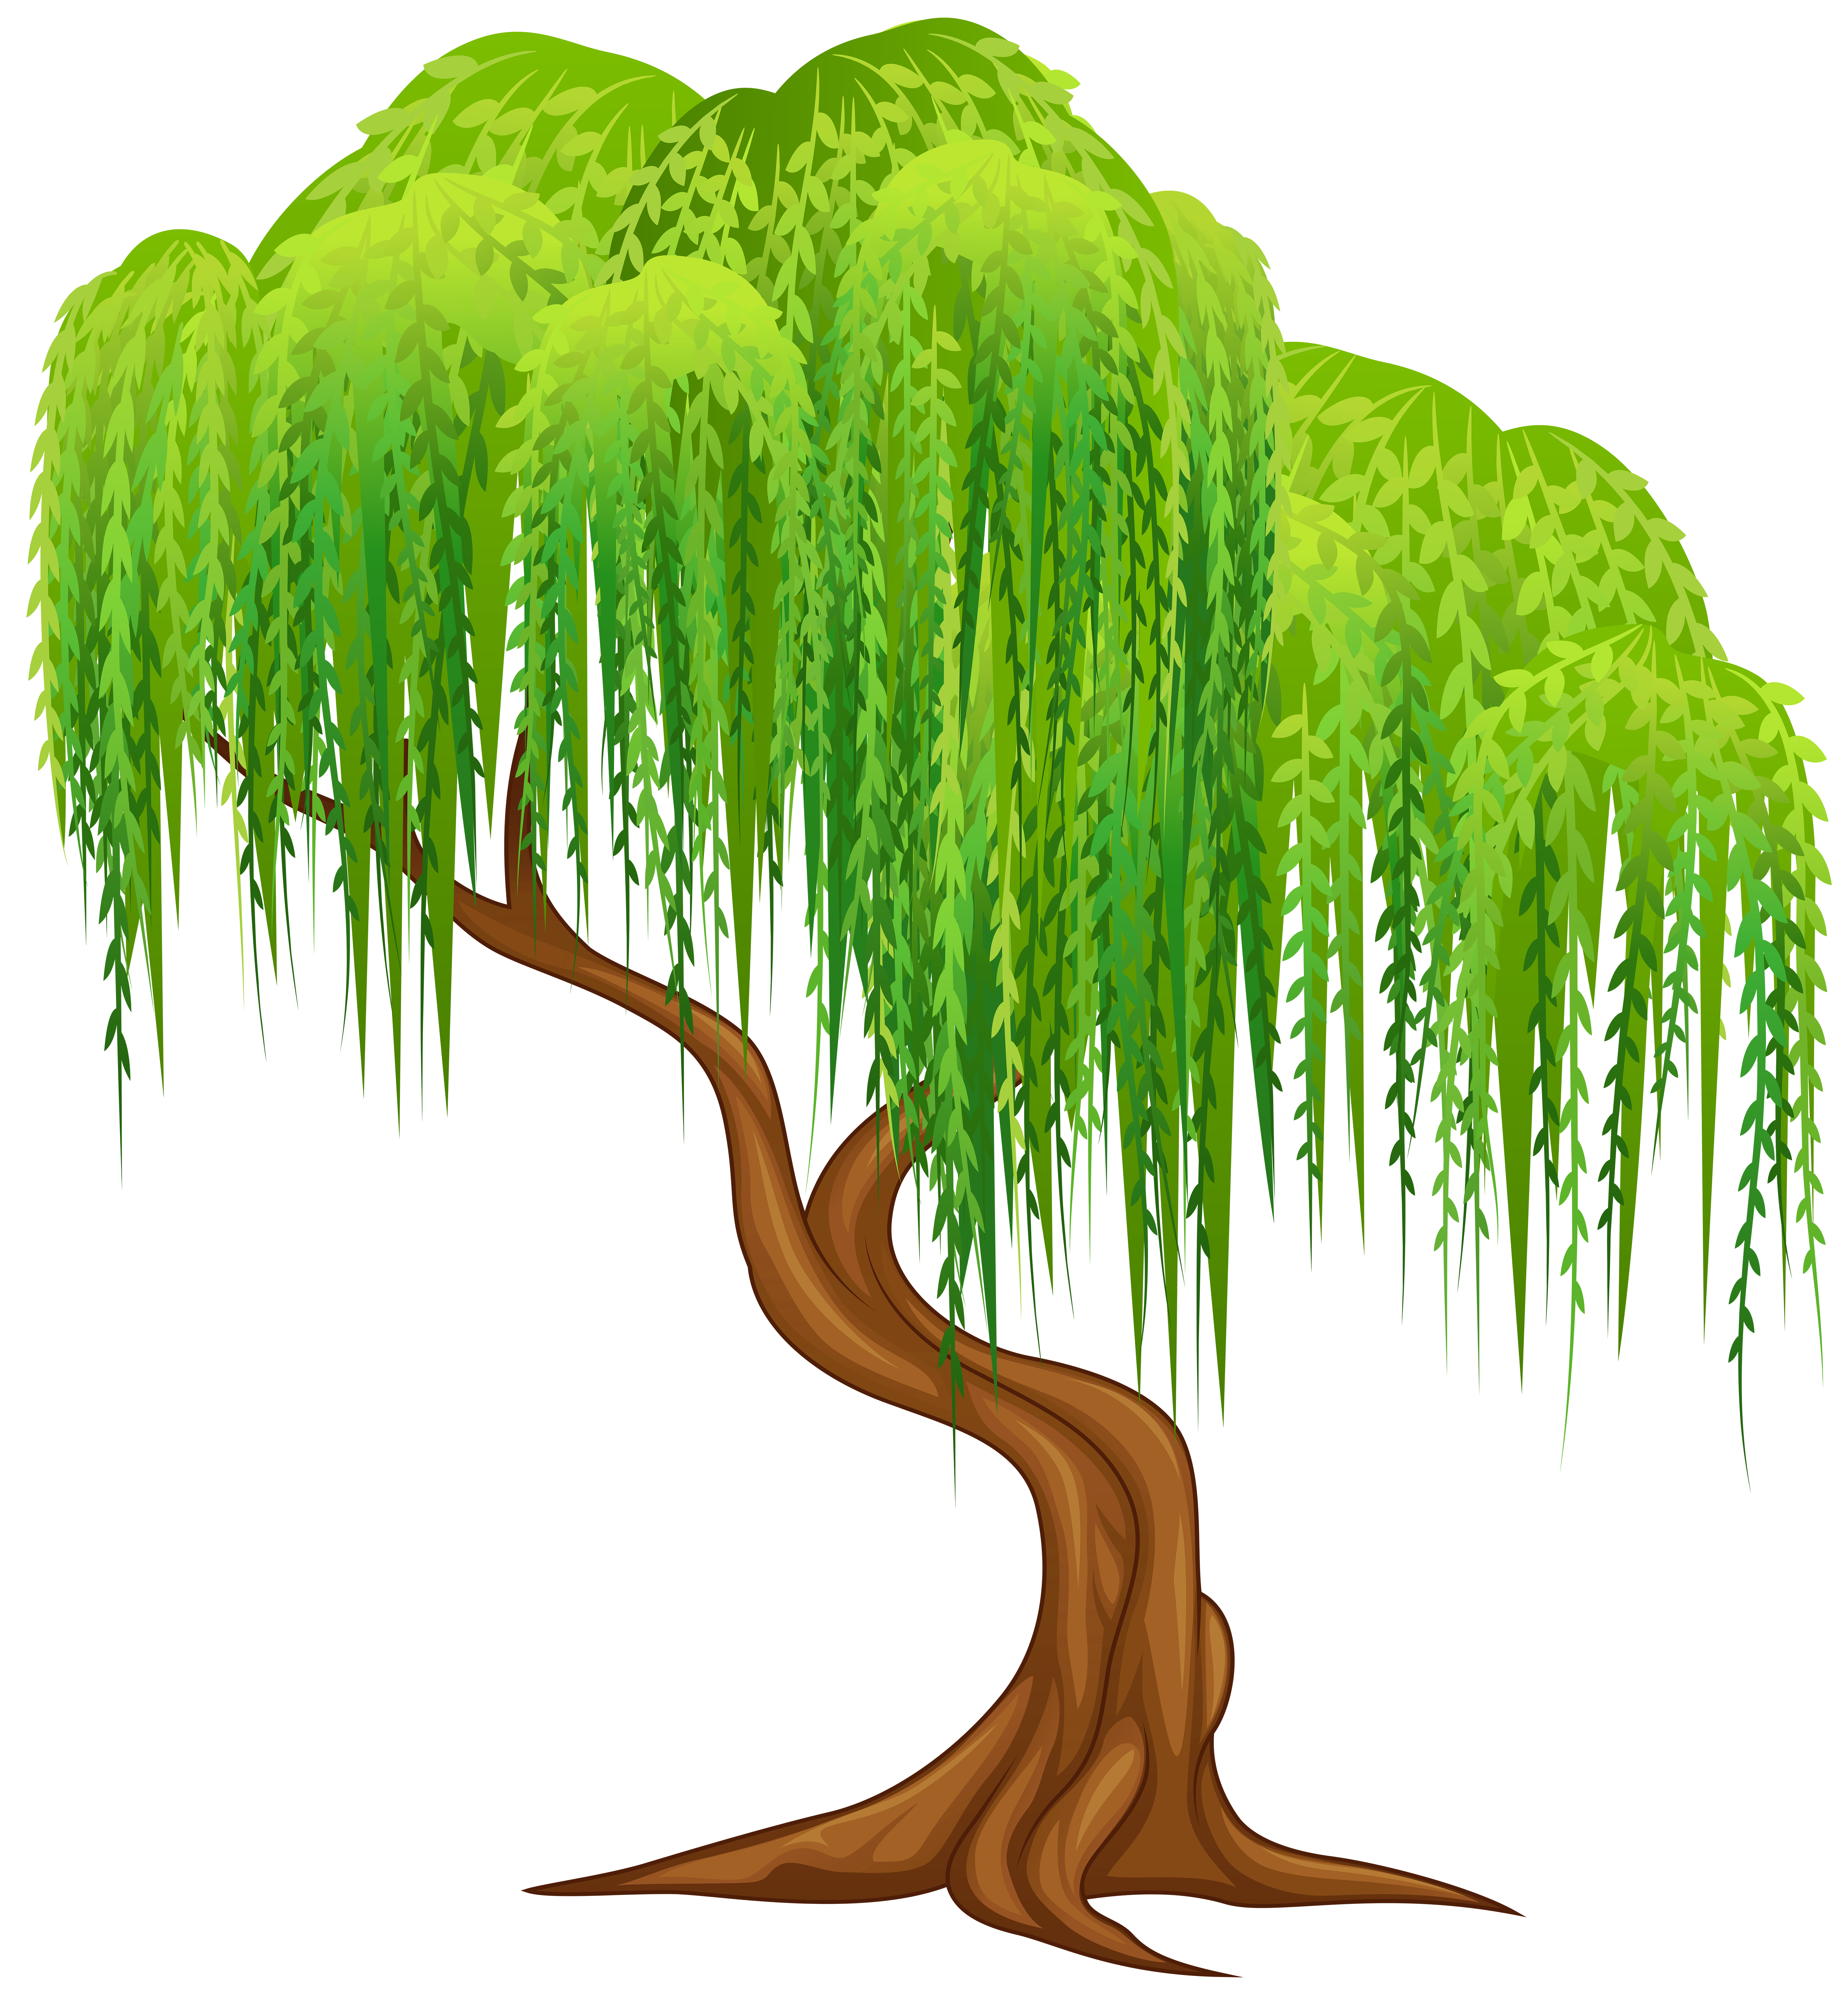 Clipart tree birthday. Willow transparent png clip